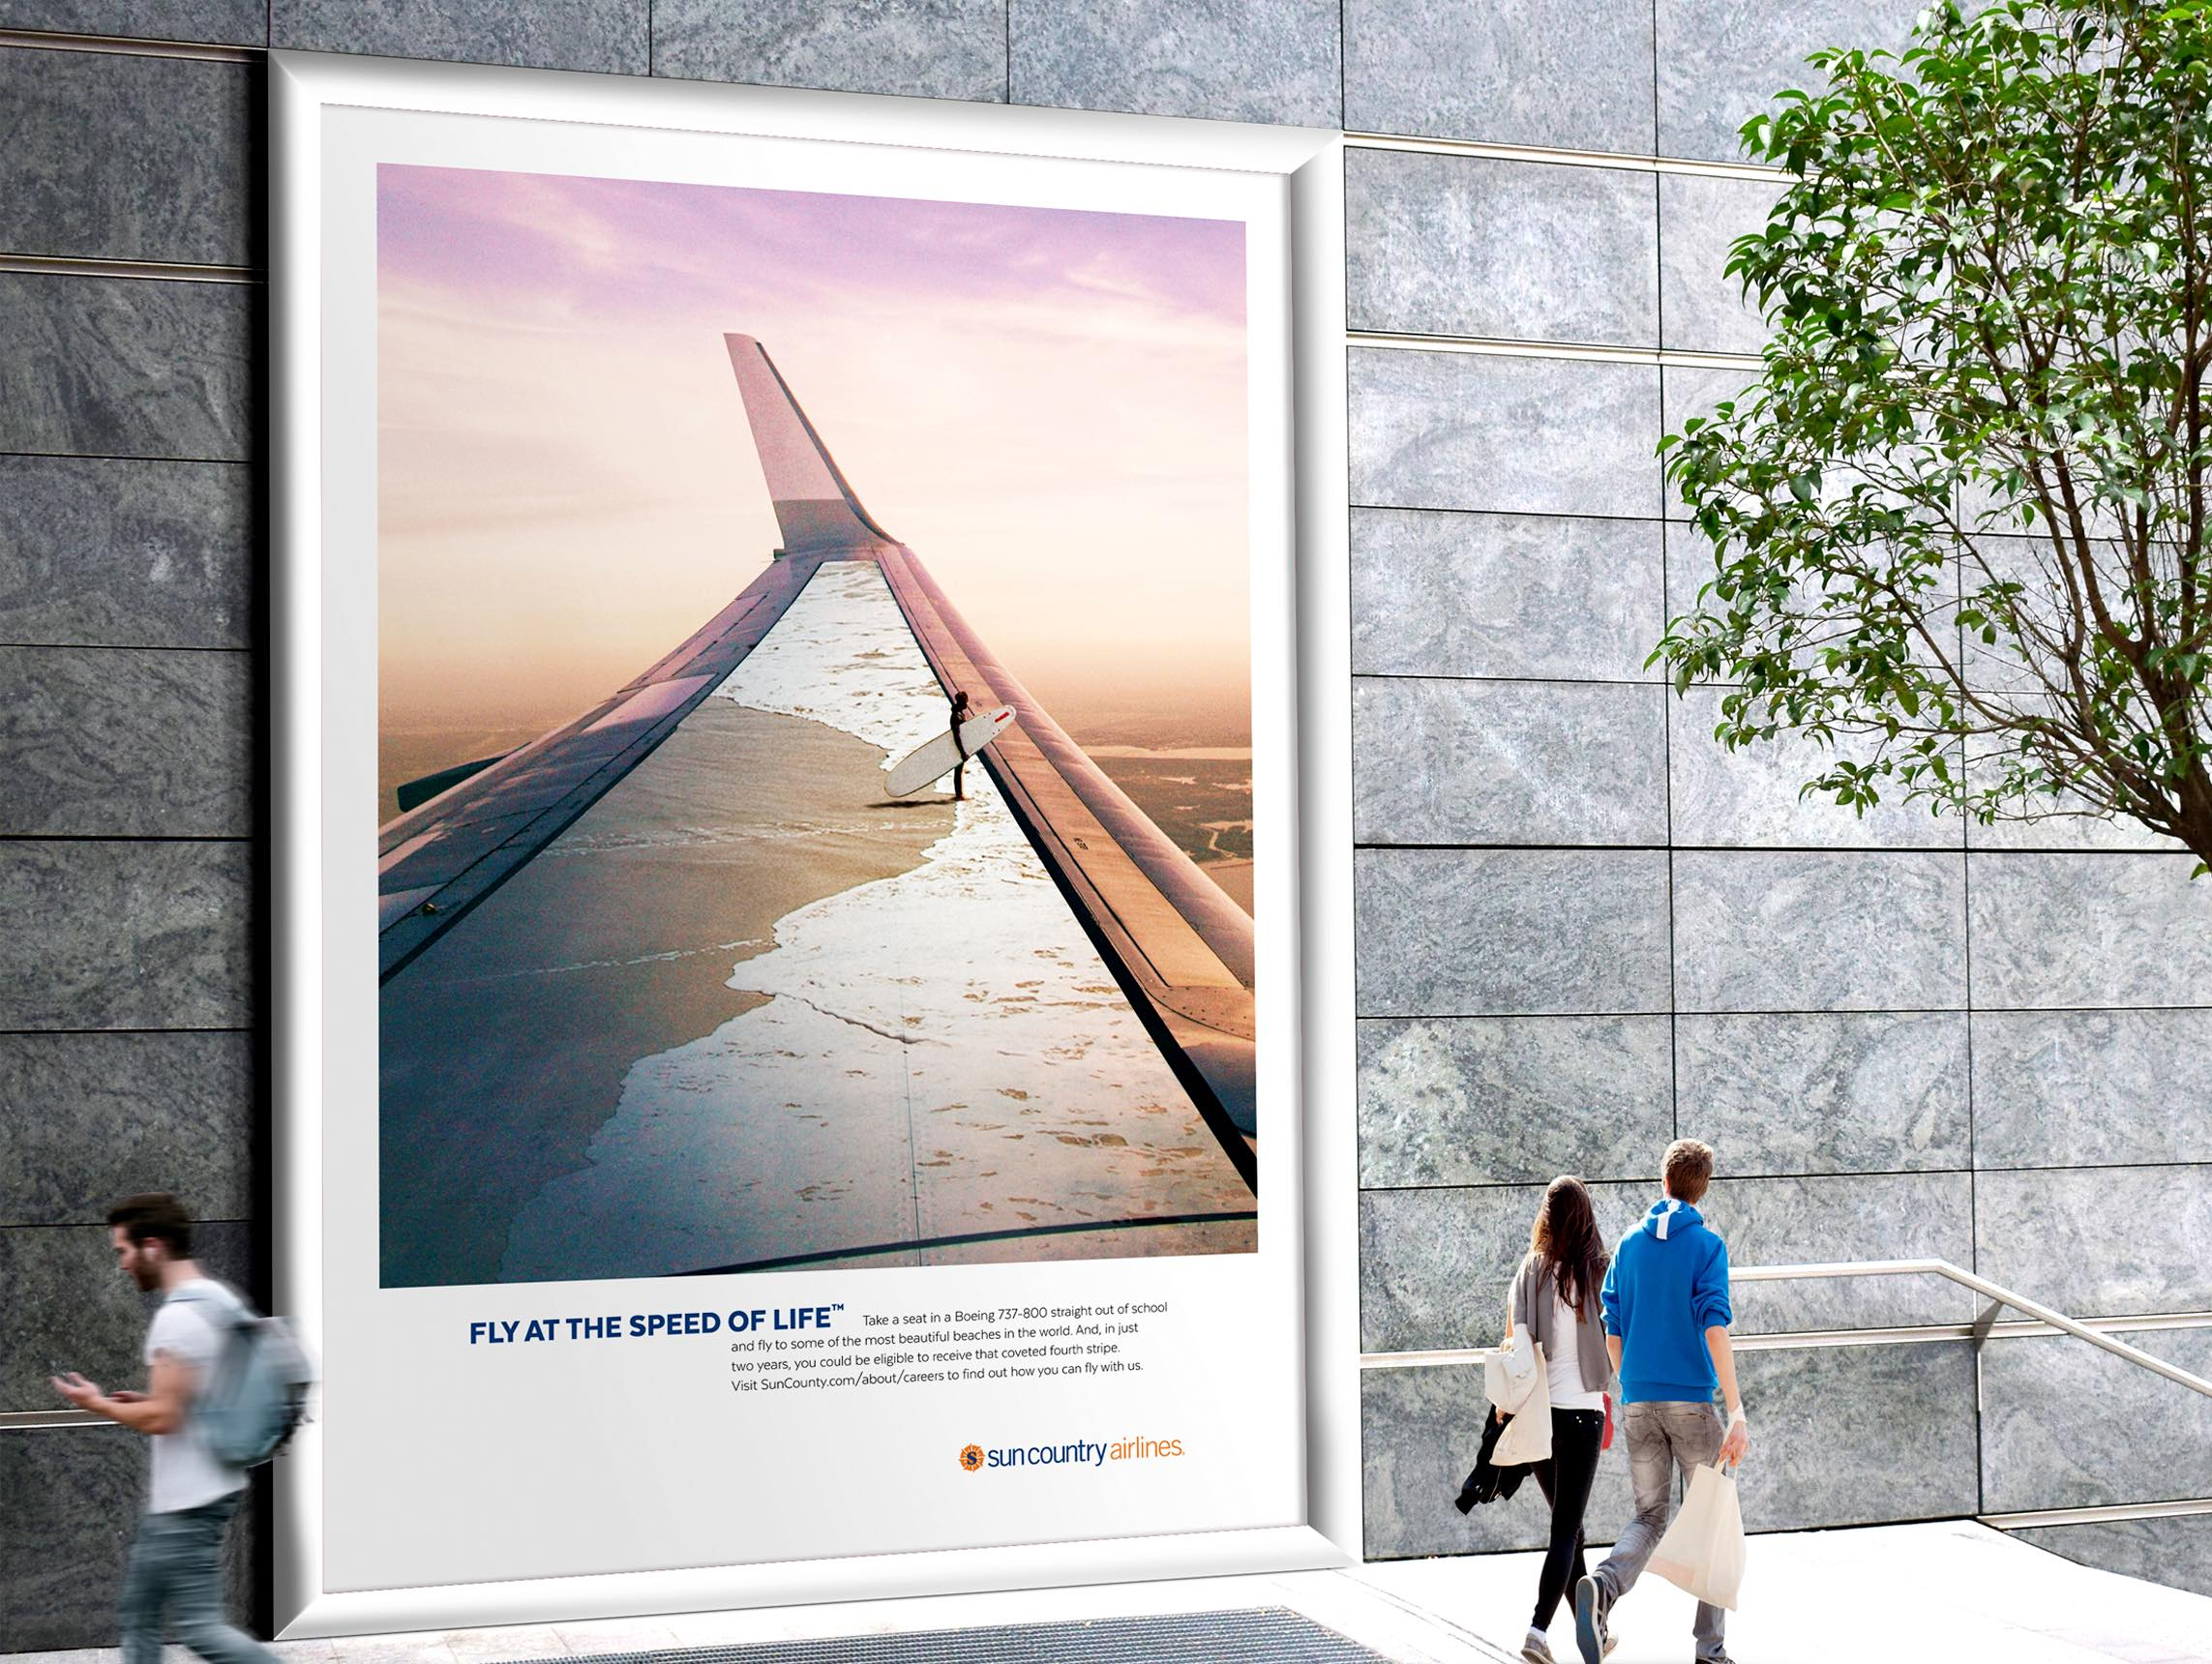 Sun Country Airlines Fly at the speed of life campaign poster design